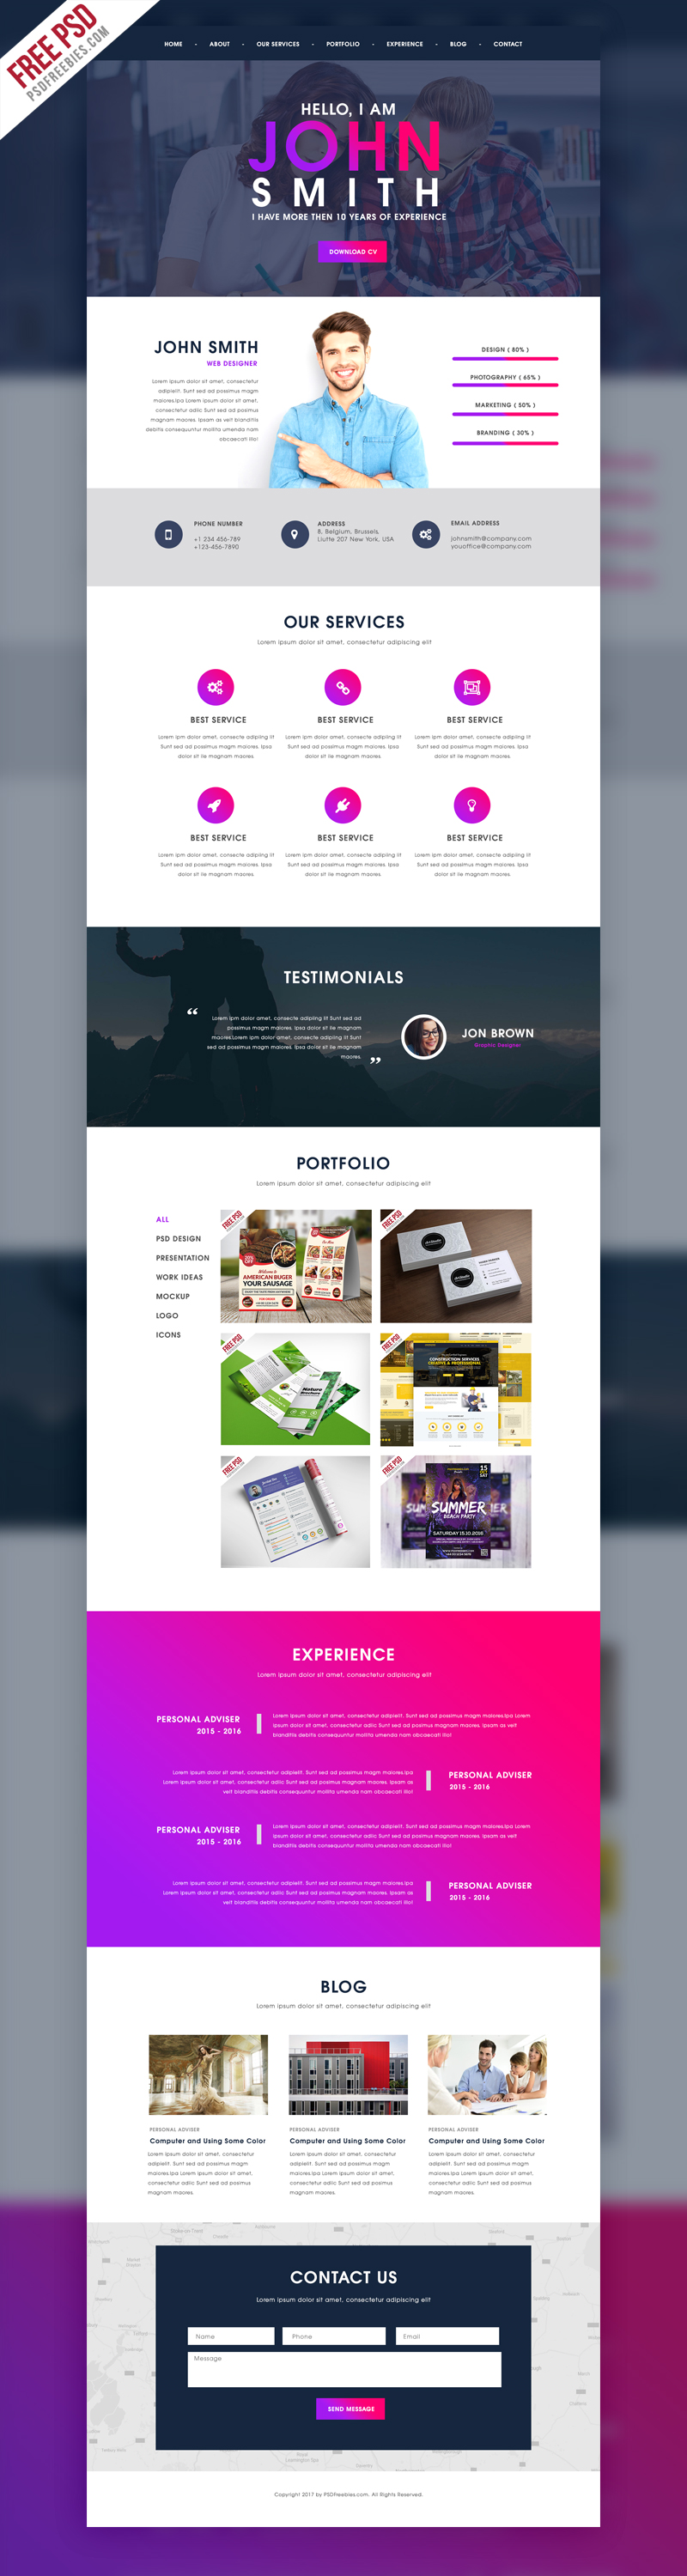 Creative one page portfolio website template free psd pinterest download creative one page portfolio website template free psd this is a minimal flat clean modern psd template for anyone who wants to build an flashek